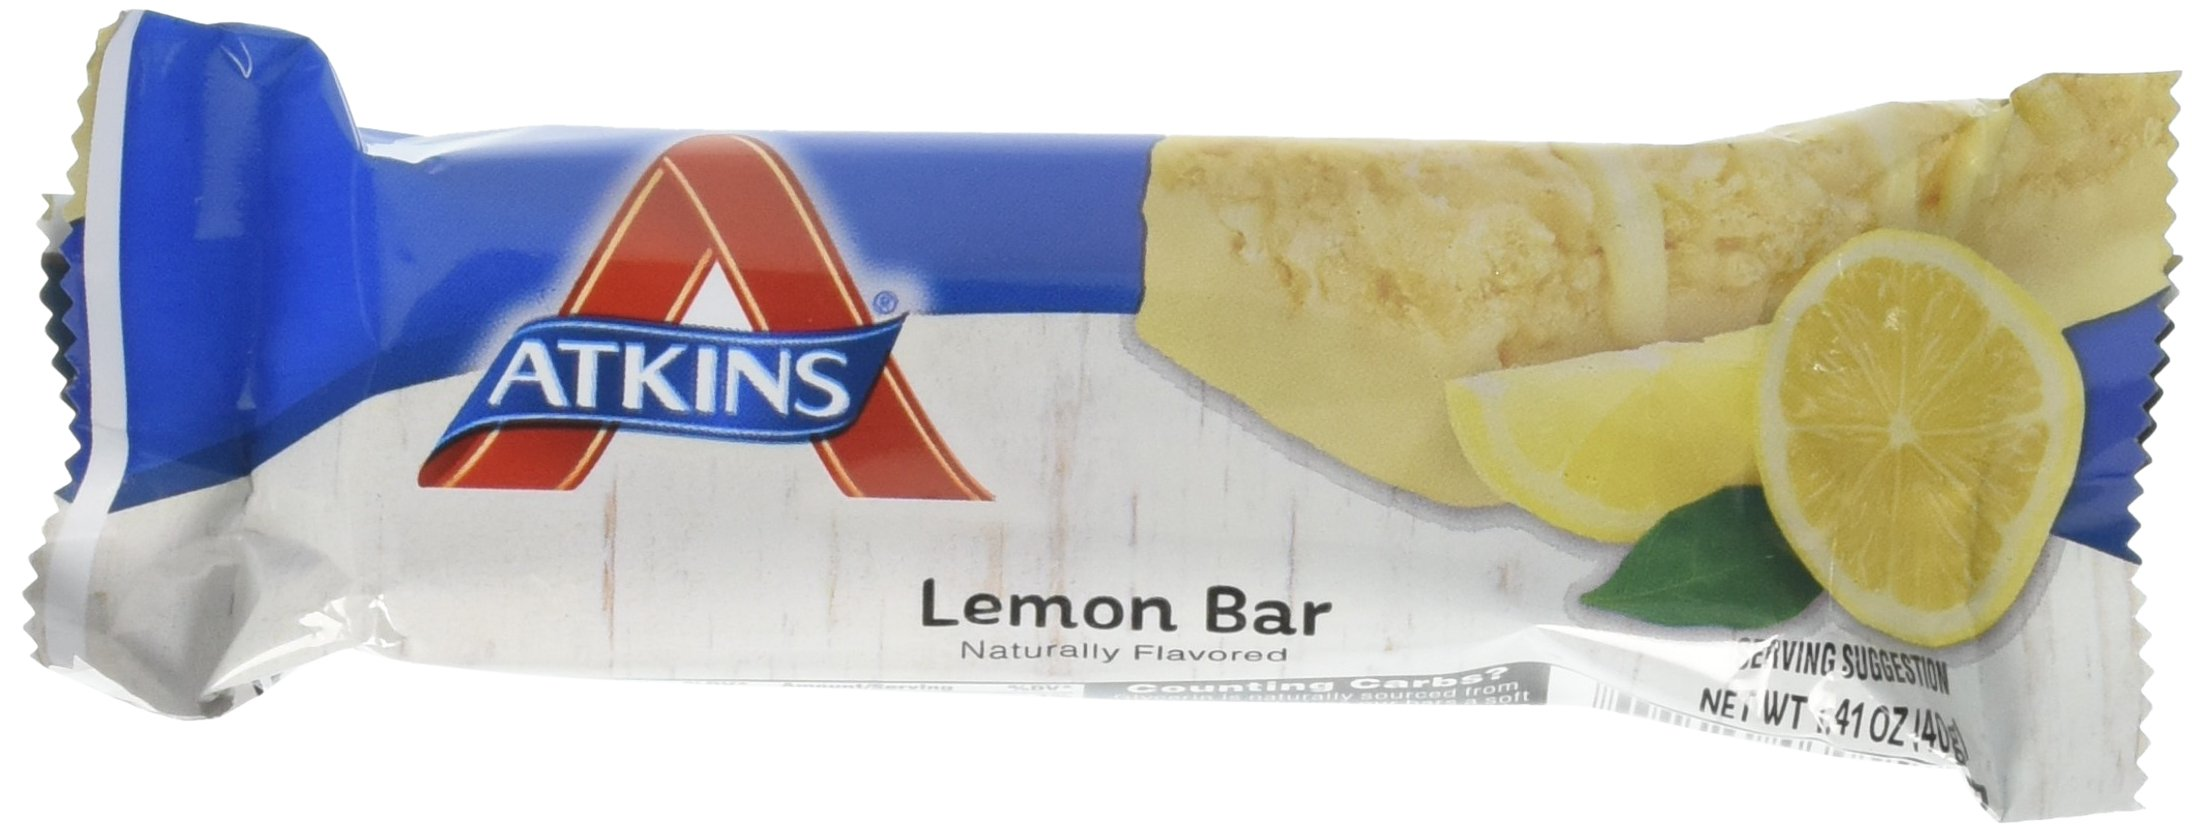 Atkins, Light & Crispy Lemon Bar, 5 Bars, 1.41 oz (40 g) Each